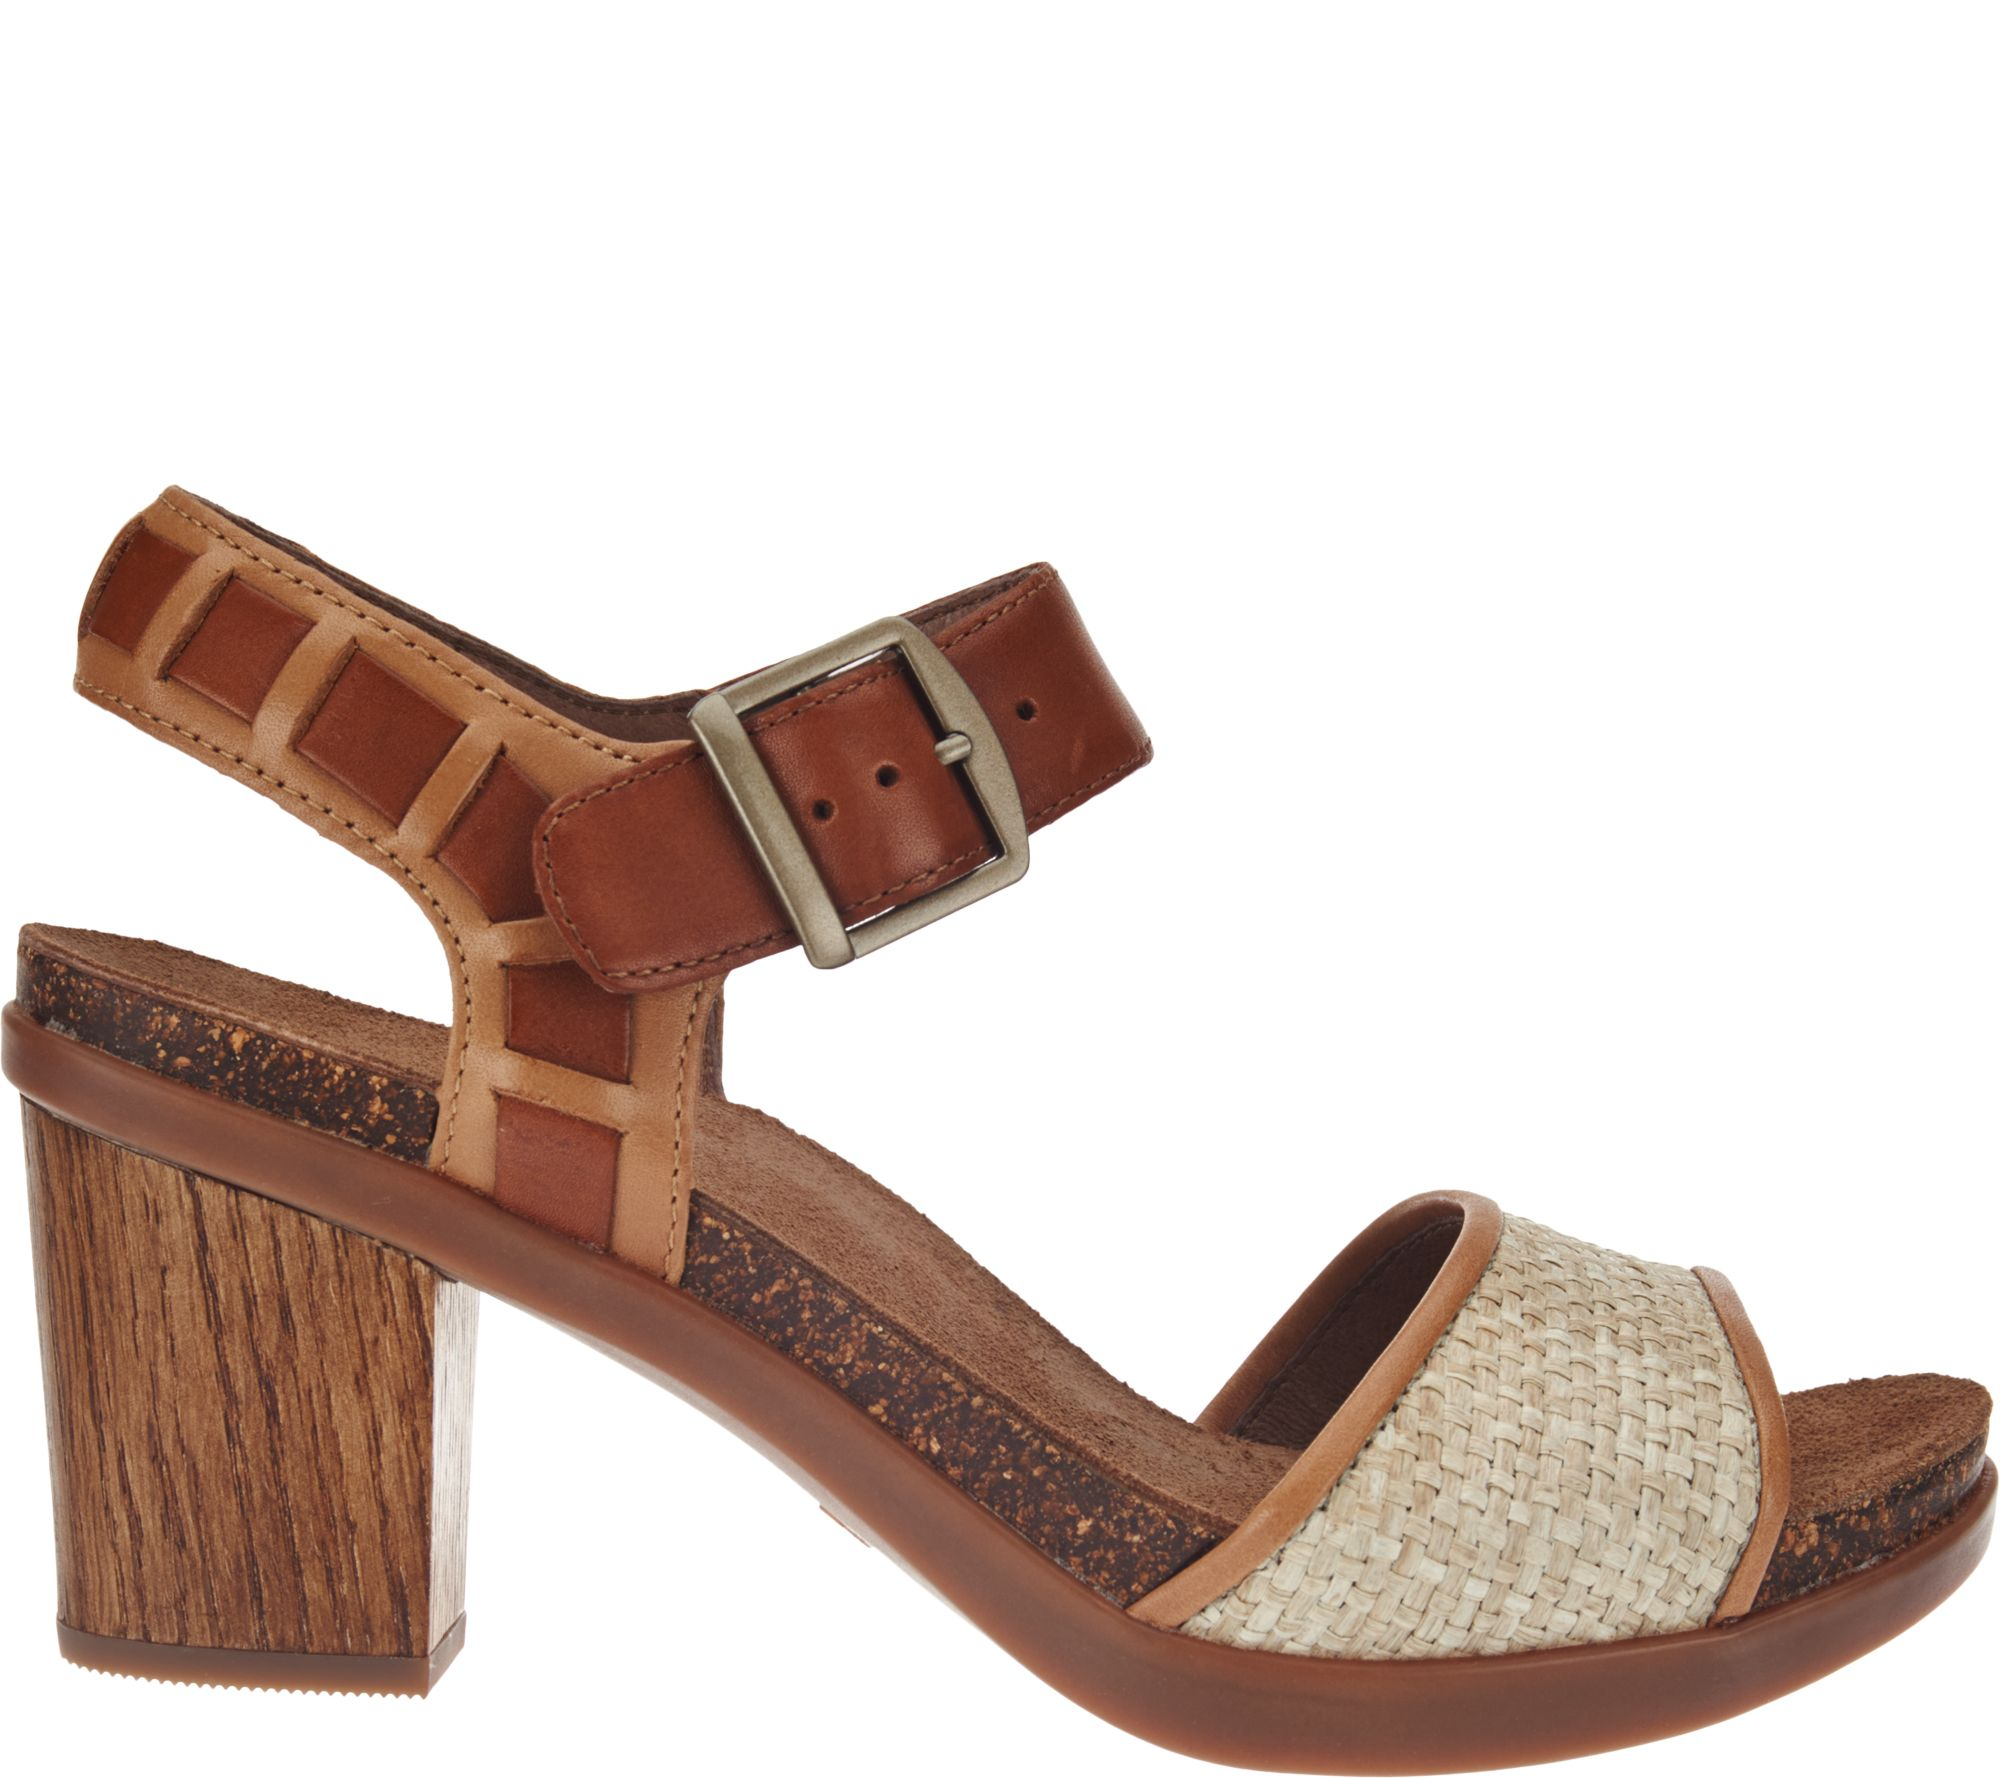 3cbb640dcde Dansko Leather Sandals with Adj. Ankle Strap - Debby - Page 1 — QVC.com